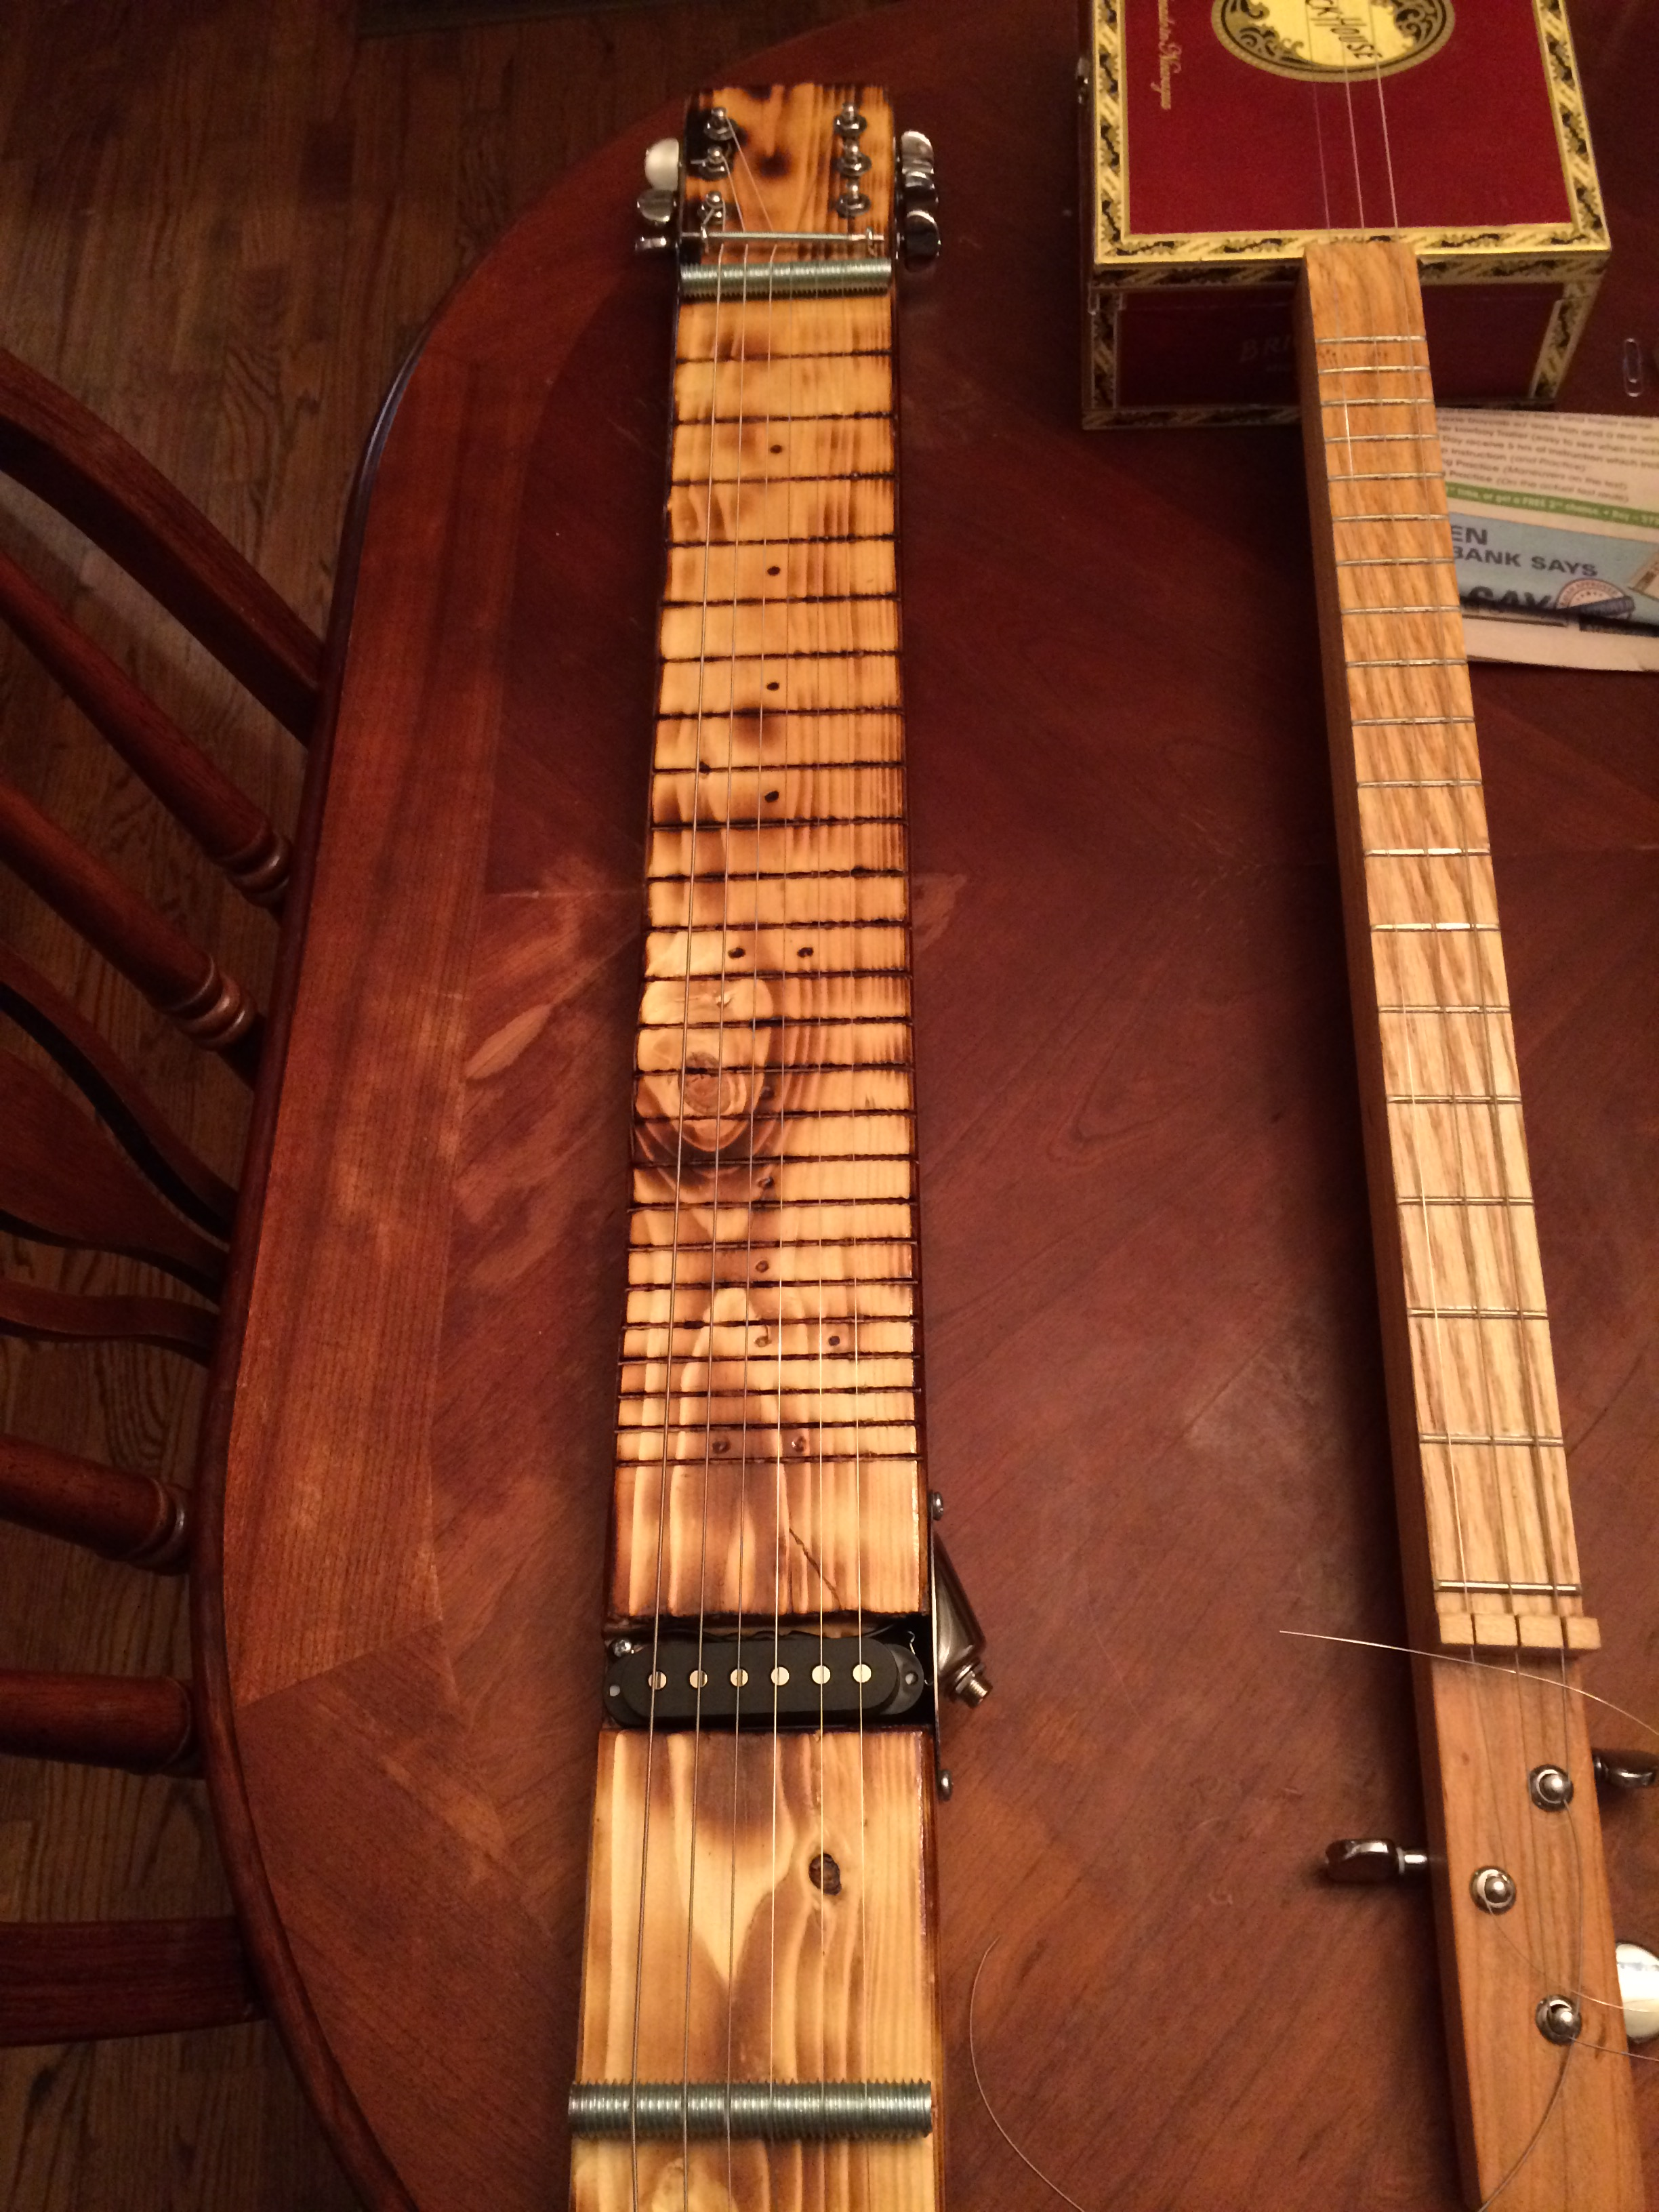 Contest The 2x4 Challenge May 2017 Cigar Box Nation Electric Guitar Wiring Diagrams Free Http Wwwcigarboxnationcom Xn I Hope Story Made You Smile Dont Think My Lap Steel Is As Interesting Some Of Yours Postedbut Still Wanted To Put Mine Up Here